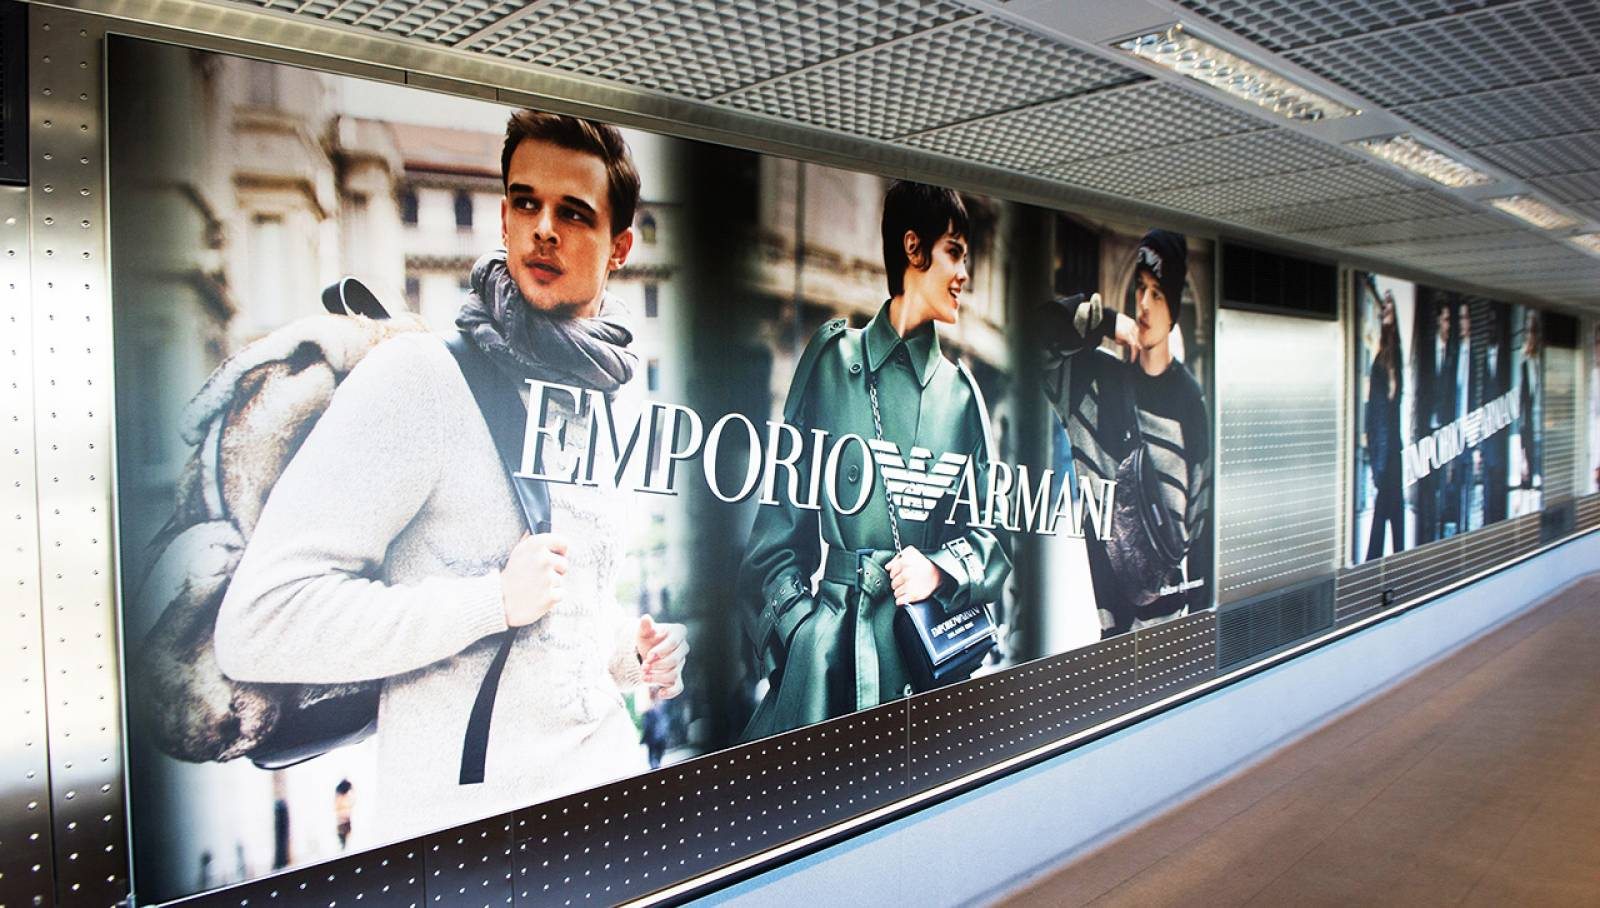 Out of Home advertising IGPDecaux Finger for Armani at Malpensa airport